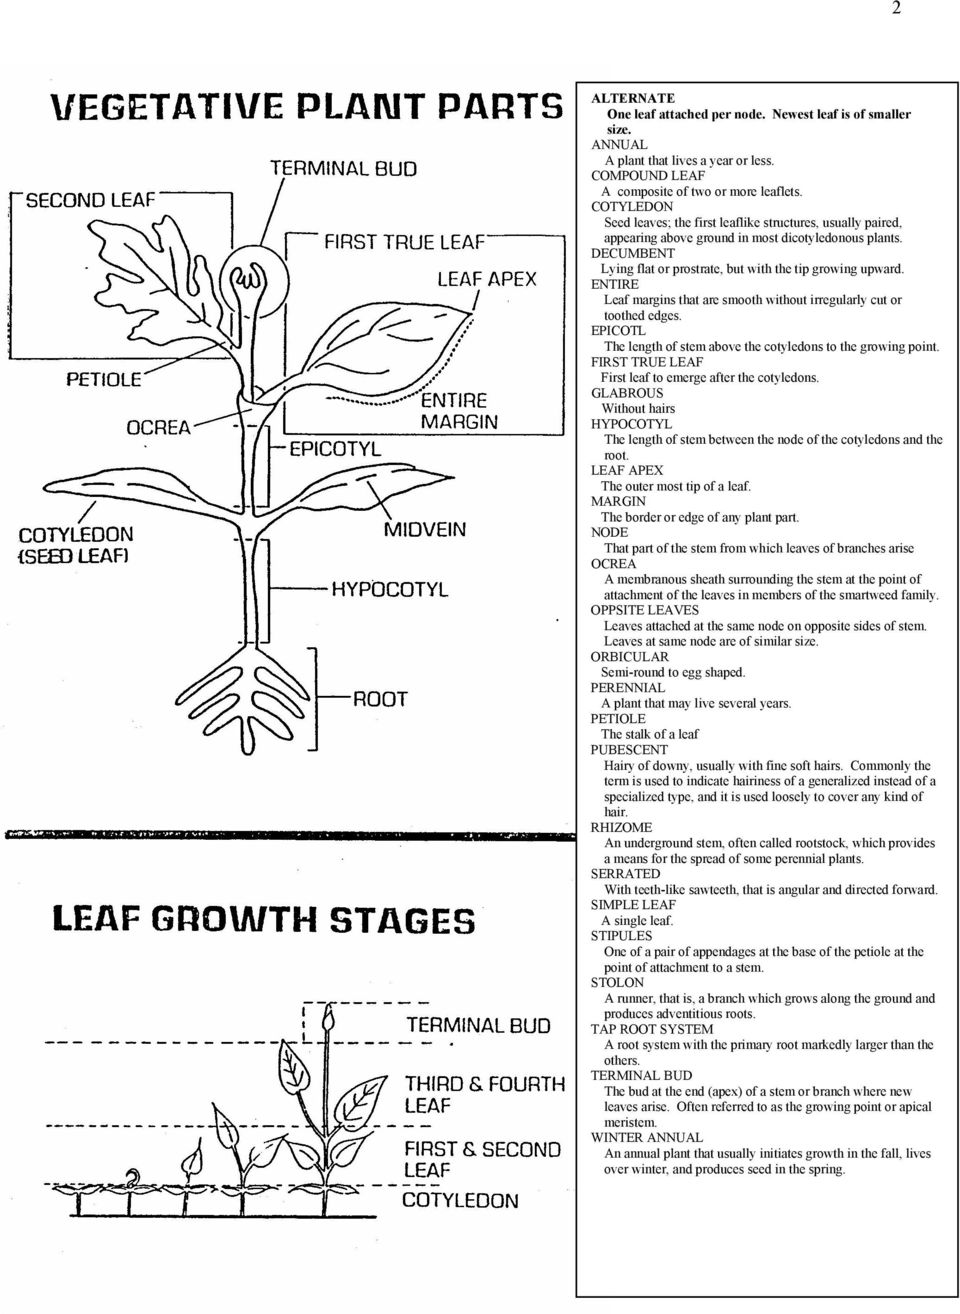 ENTIRE Leaf margins that are smooth without irregularly cut or toothed edges. EPICOTL The length of stem above the cotyledons to the growing point.